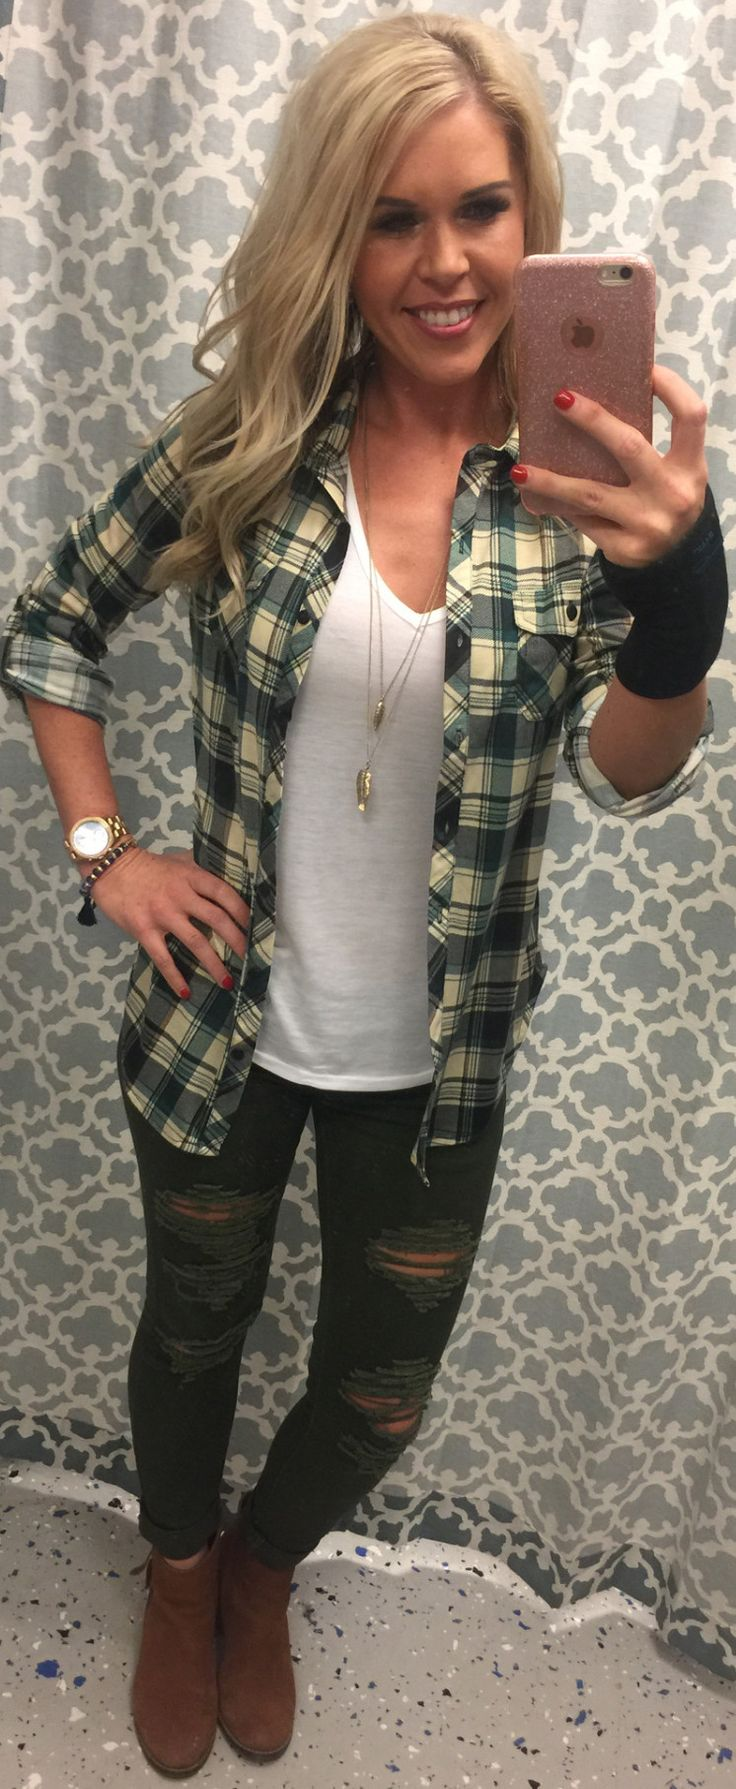 Penny Plaid Flannel Top: Ivory/Brown from privityboutique